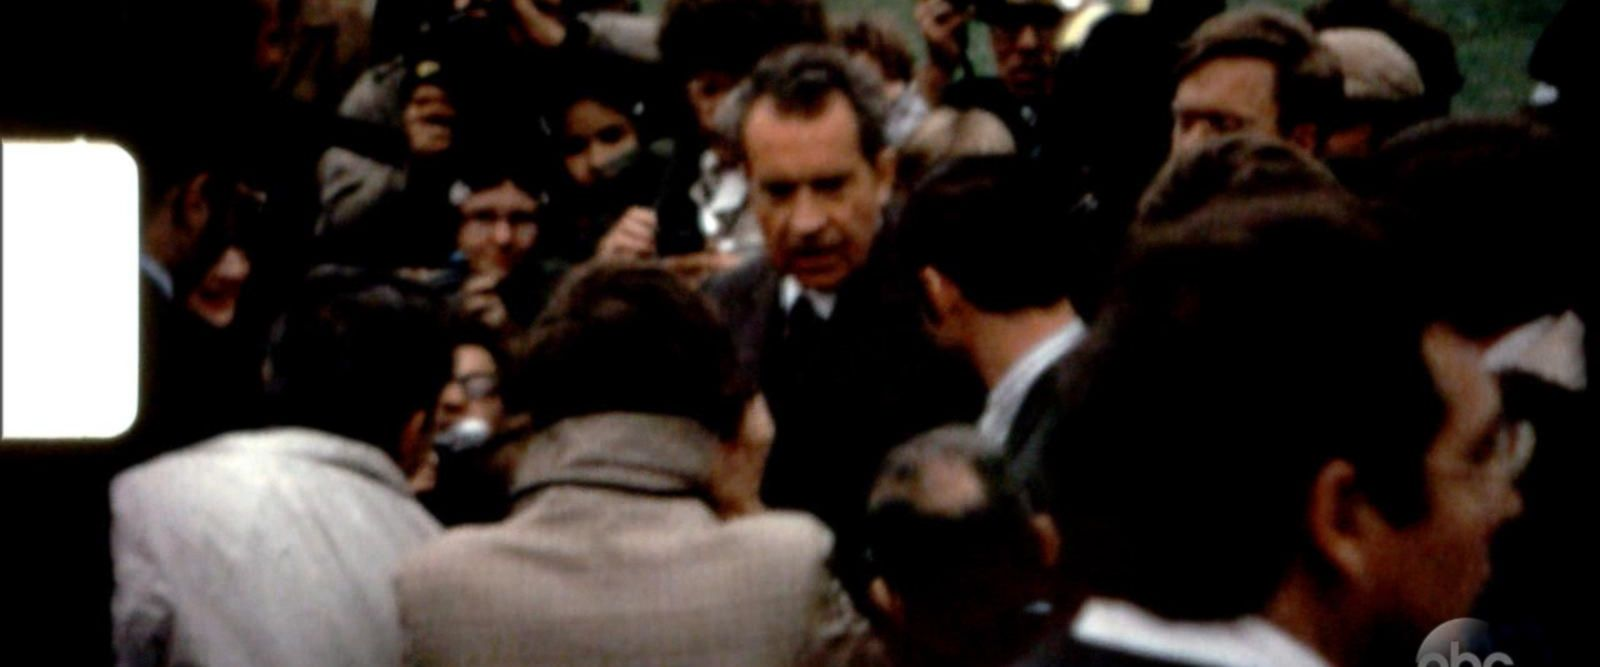 VIDEO: Richard Nixon's relationship with the press, his secret tapes: Part 1